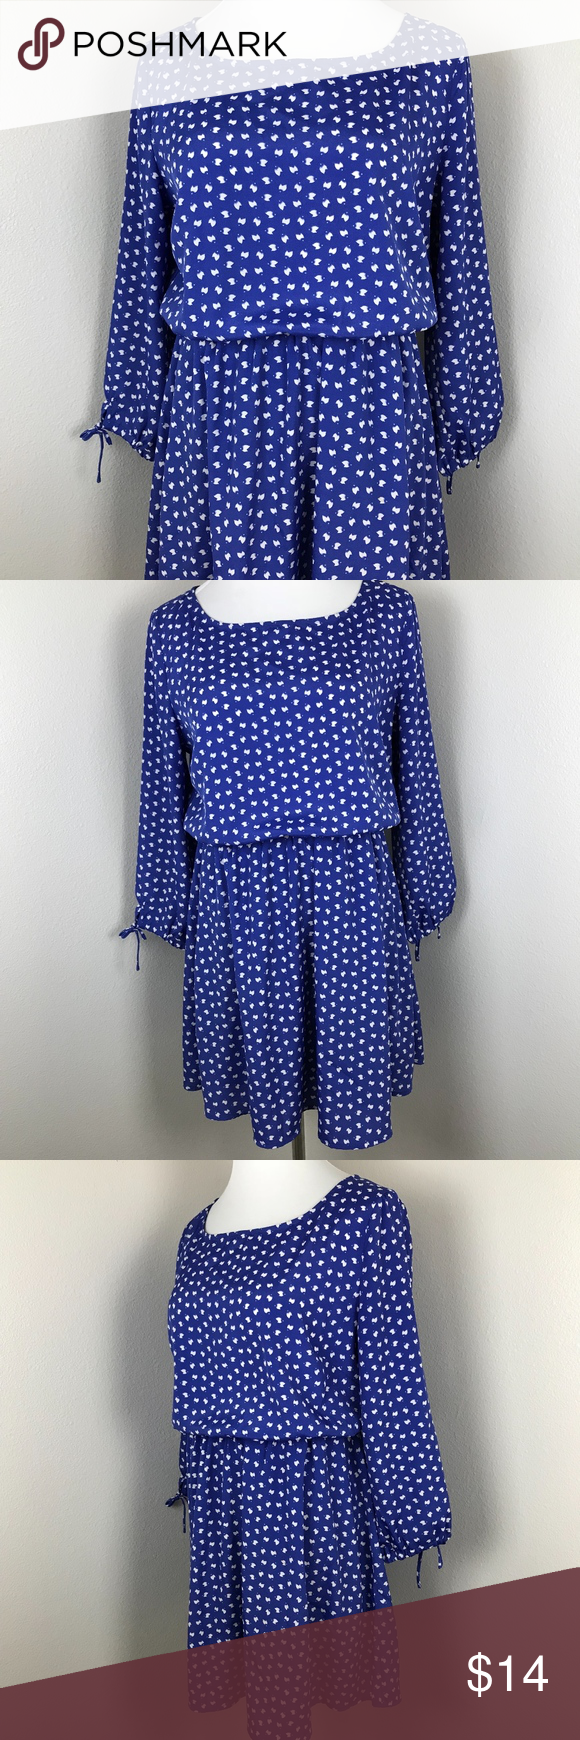 Maison Jules Printed Cobalt Dress Large -Excellent condition without flaws -Bust is 19